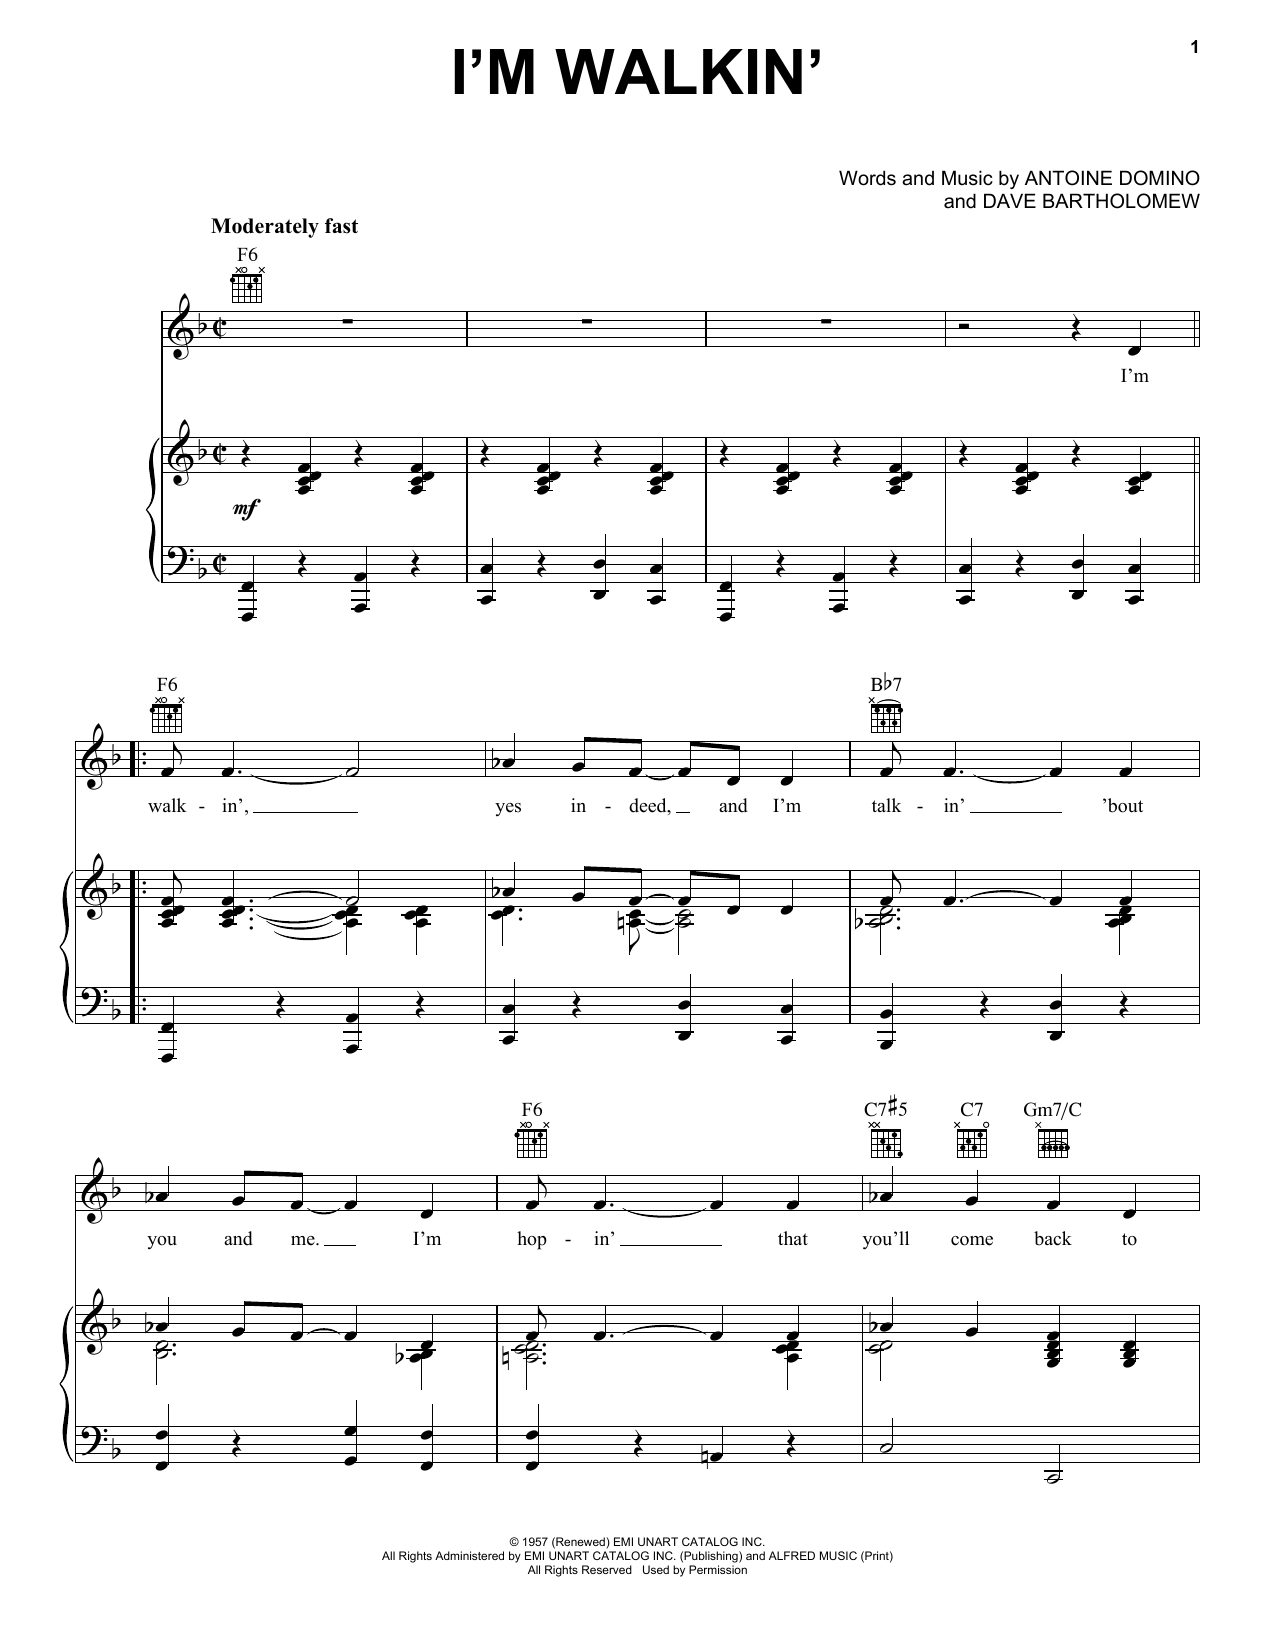 Ricky Nelson I'm Walkin' sheet music notes and chords. Download Printable PDF.